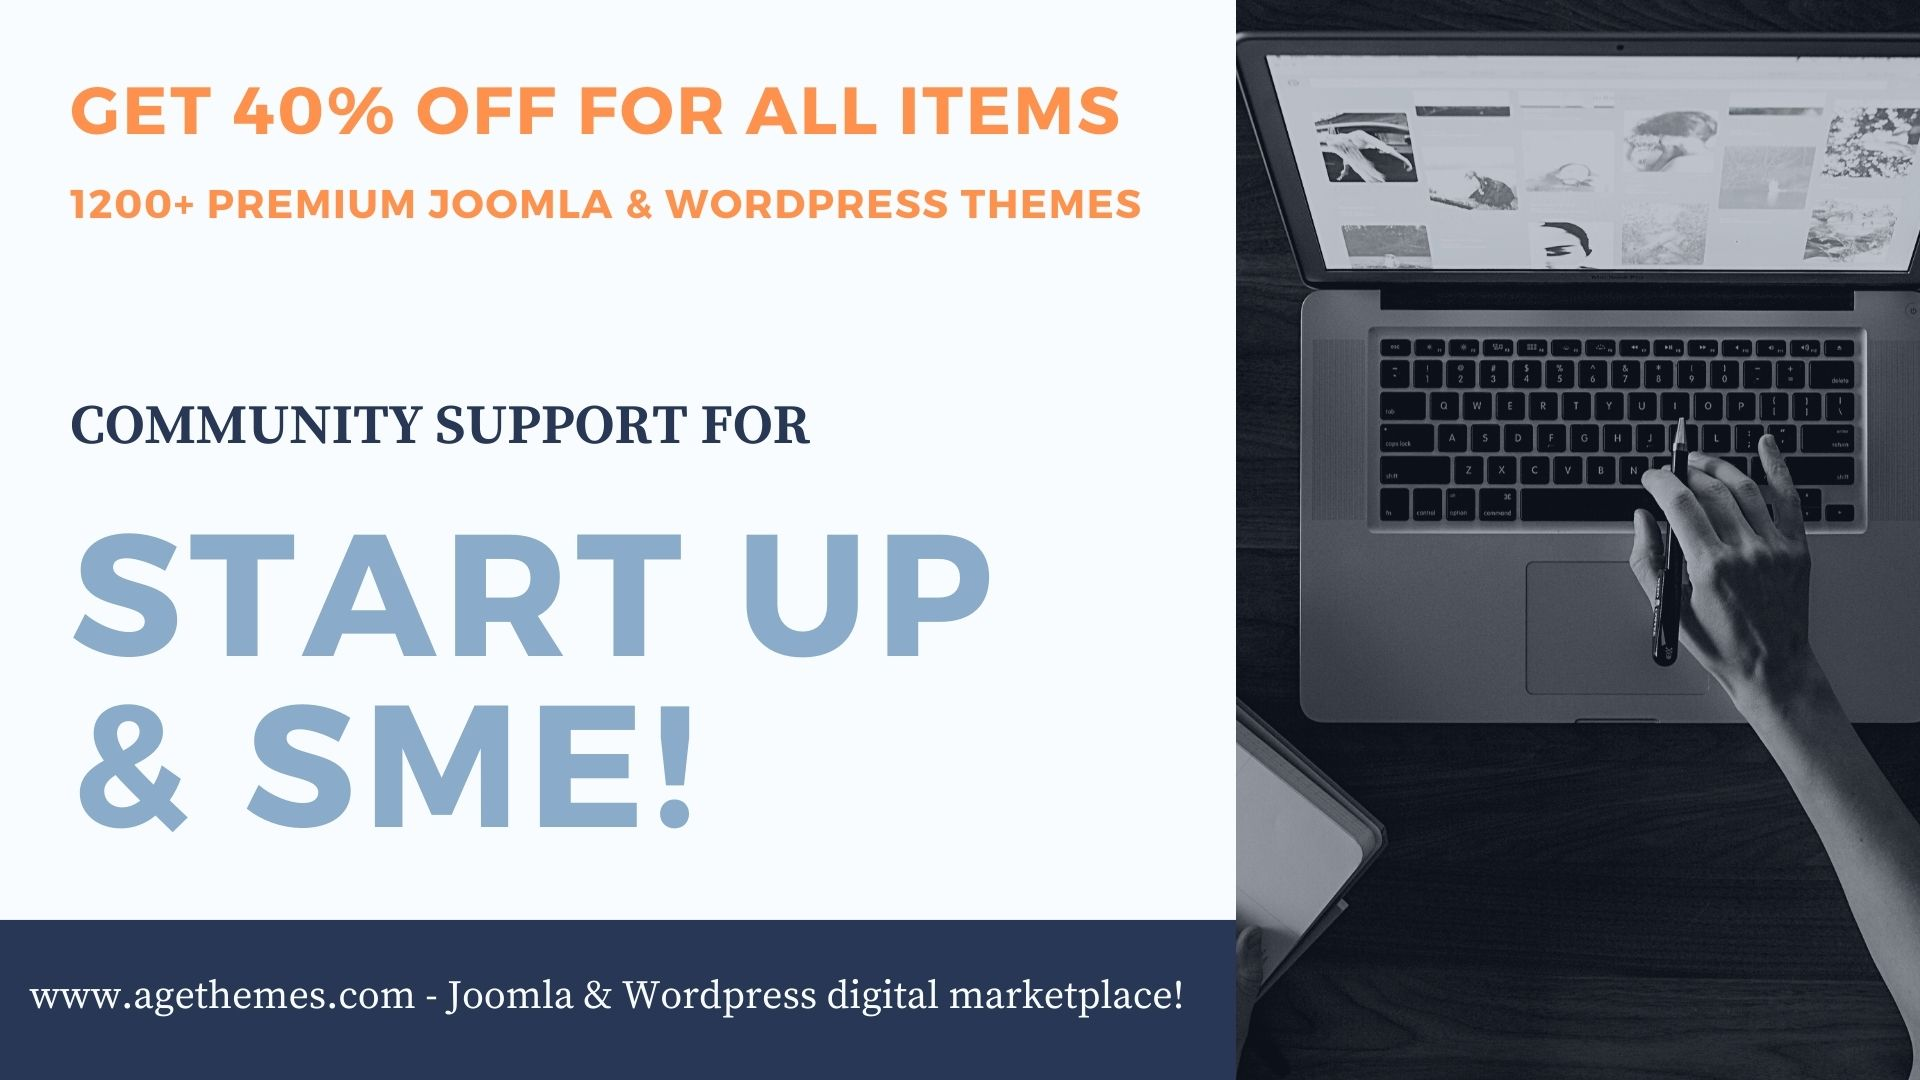 AgeThemes offer 40% OFF for all items